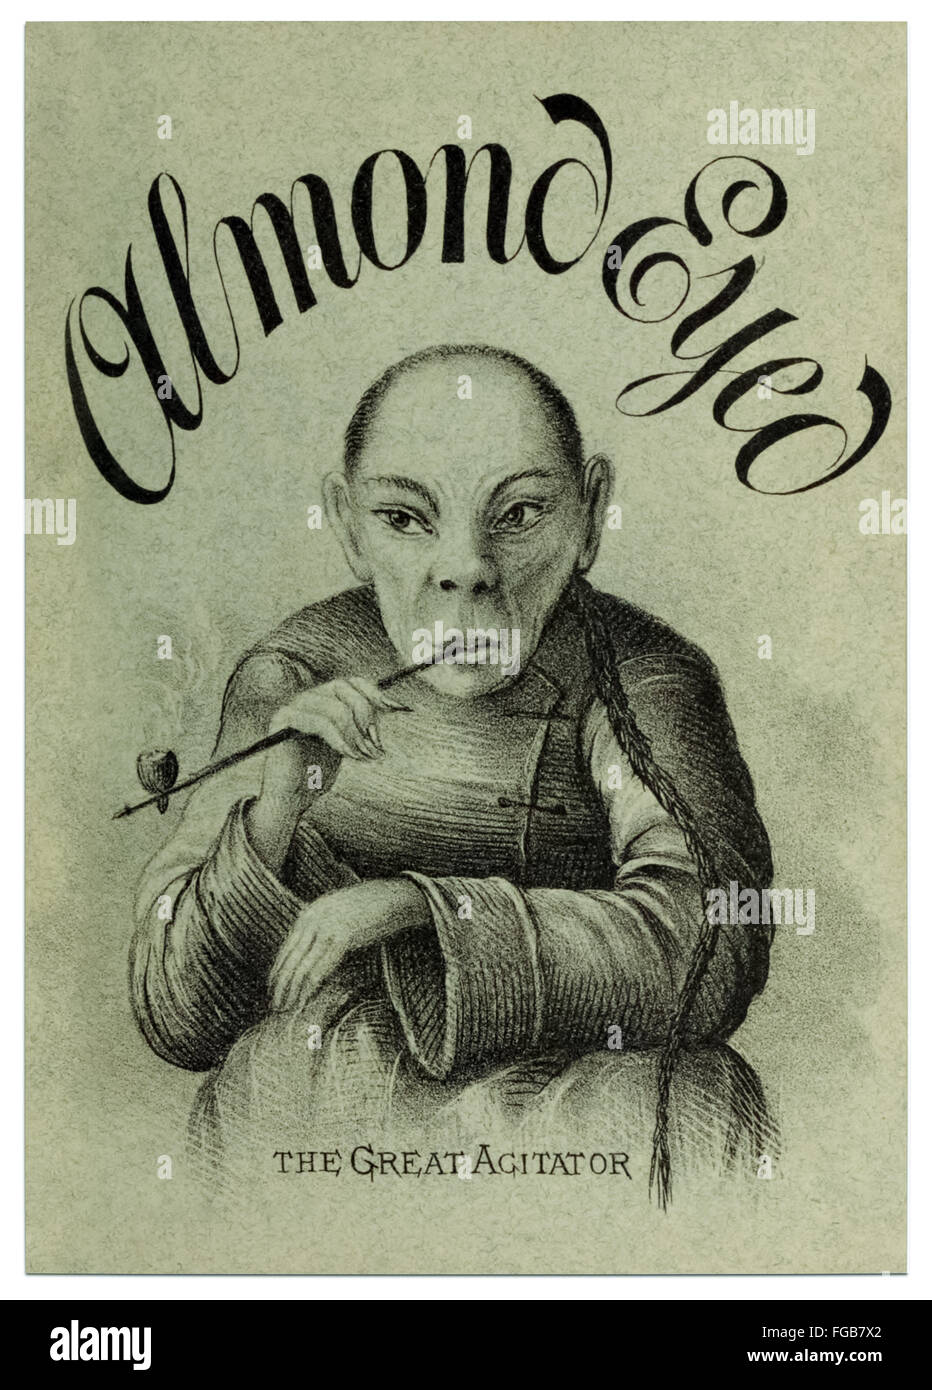 Front Cover of 'Almond Eyed - The Great Agitator' by Atwell Whitney published in 1878, a contemporary fictional - Stock Image